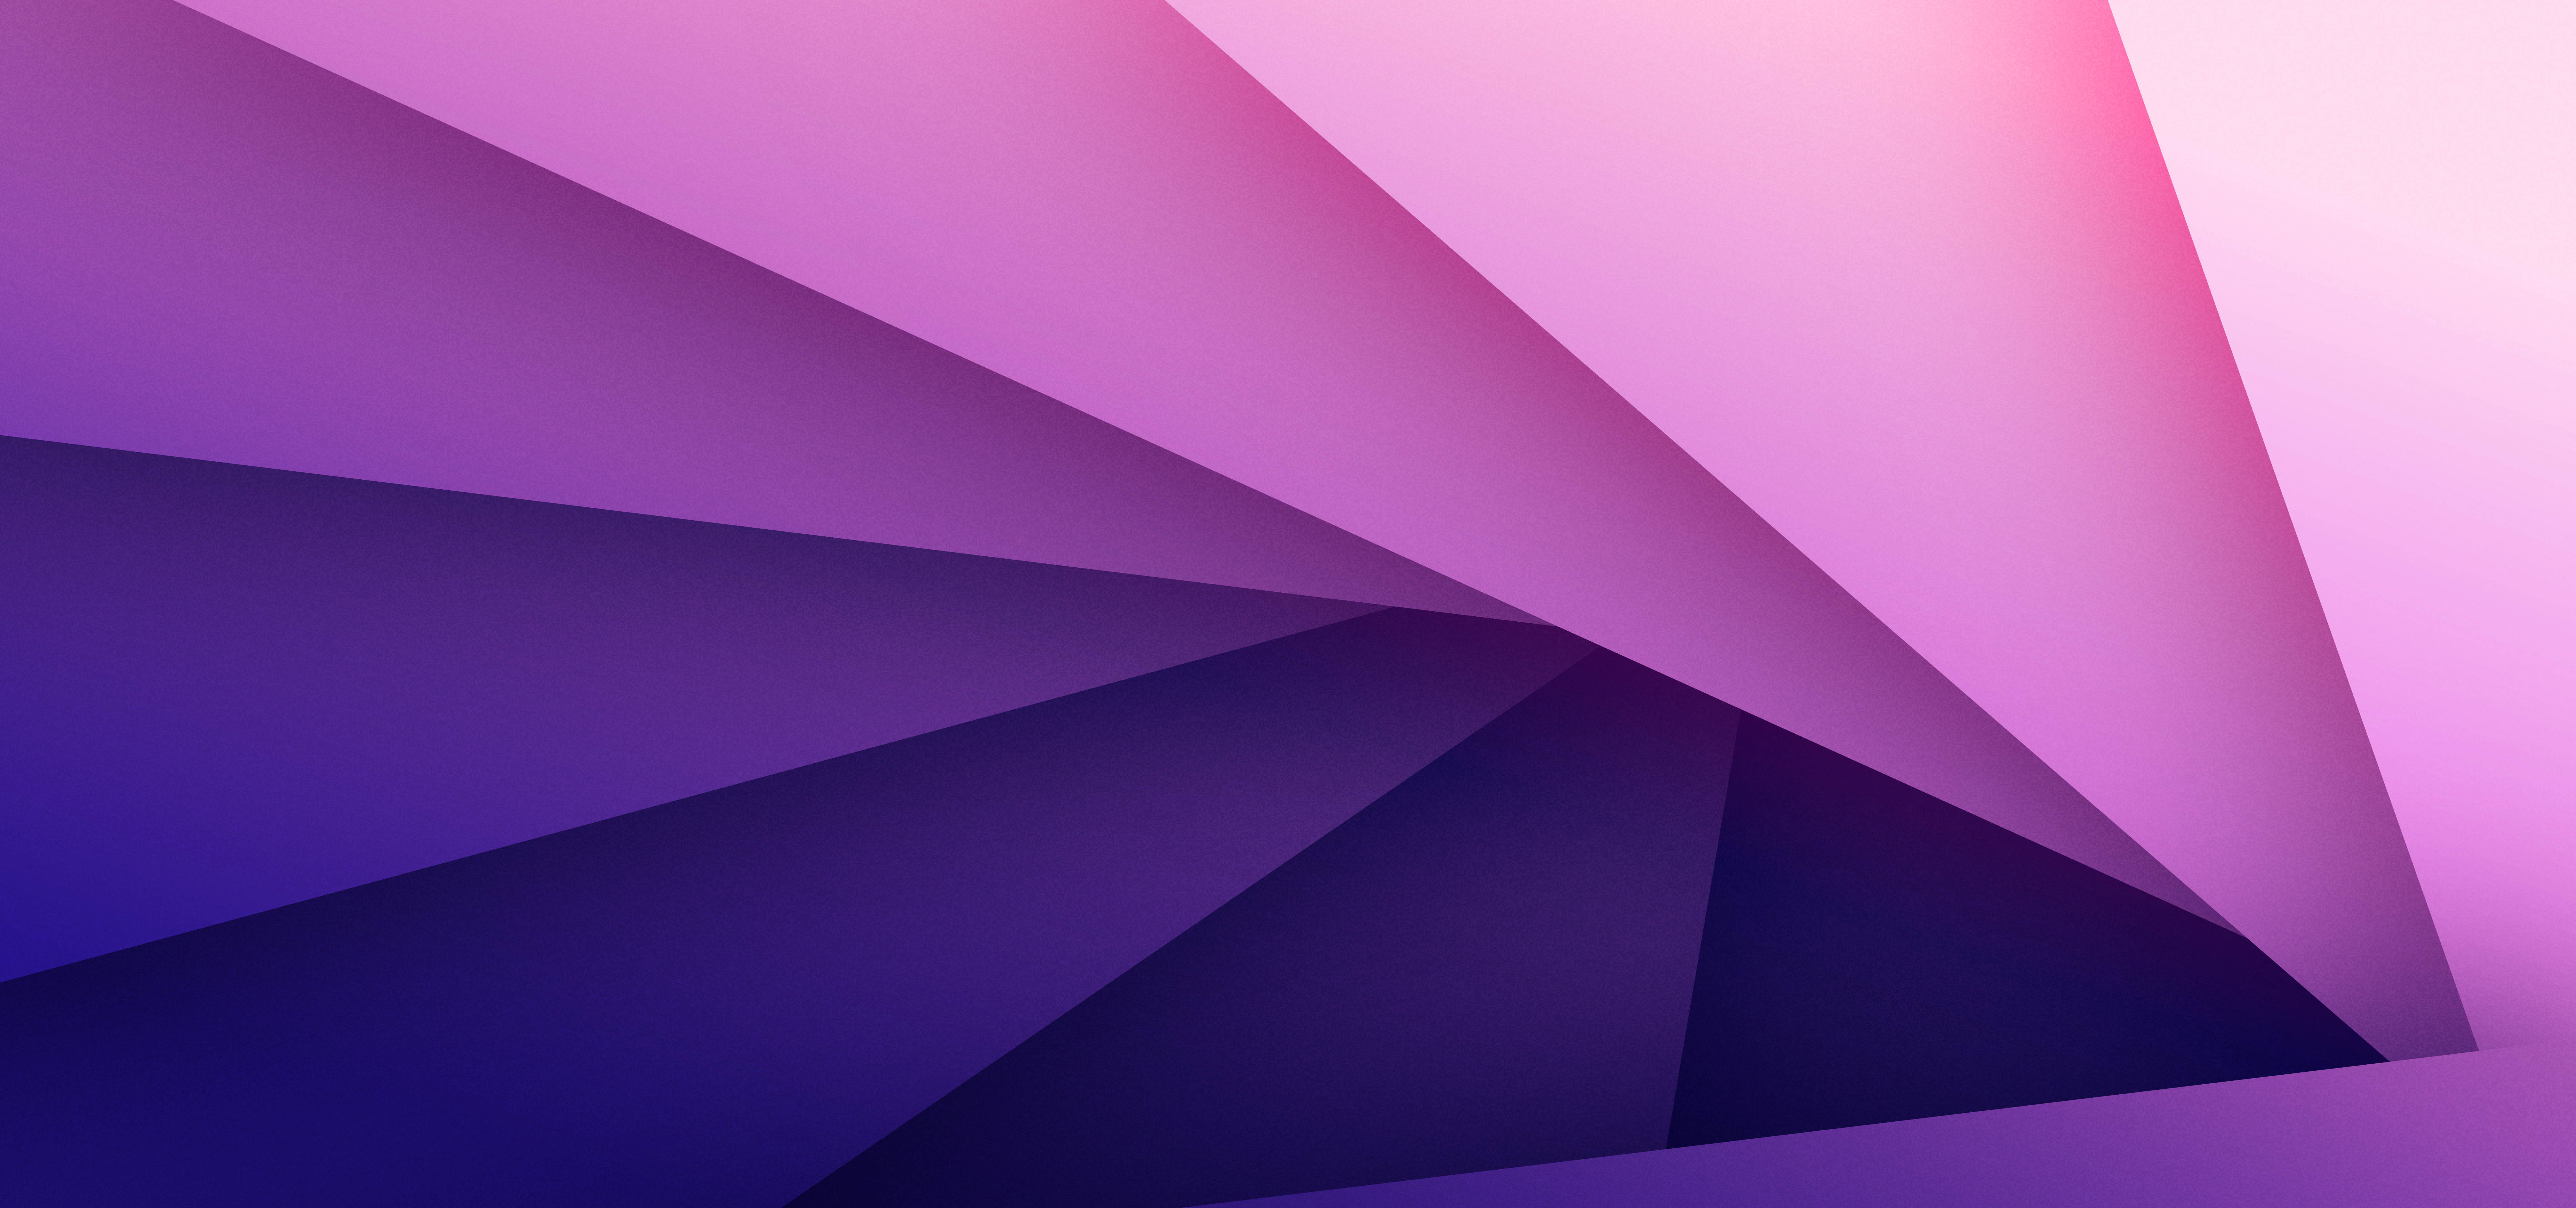 Pink and Purple Triangle Abstract Background - Download